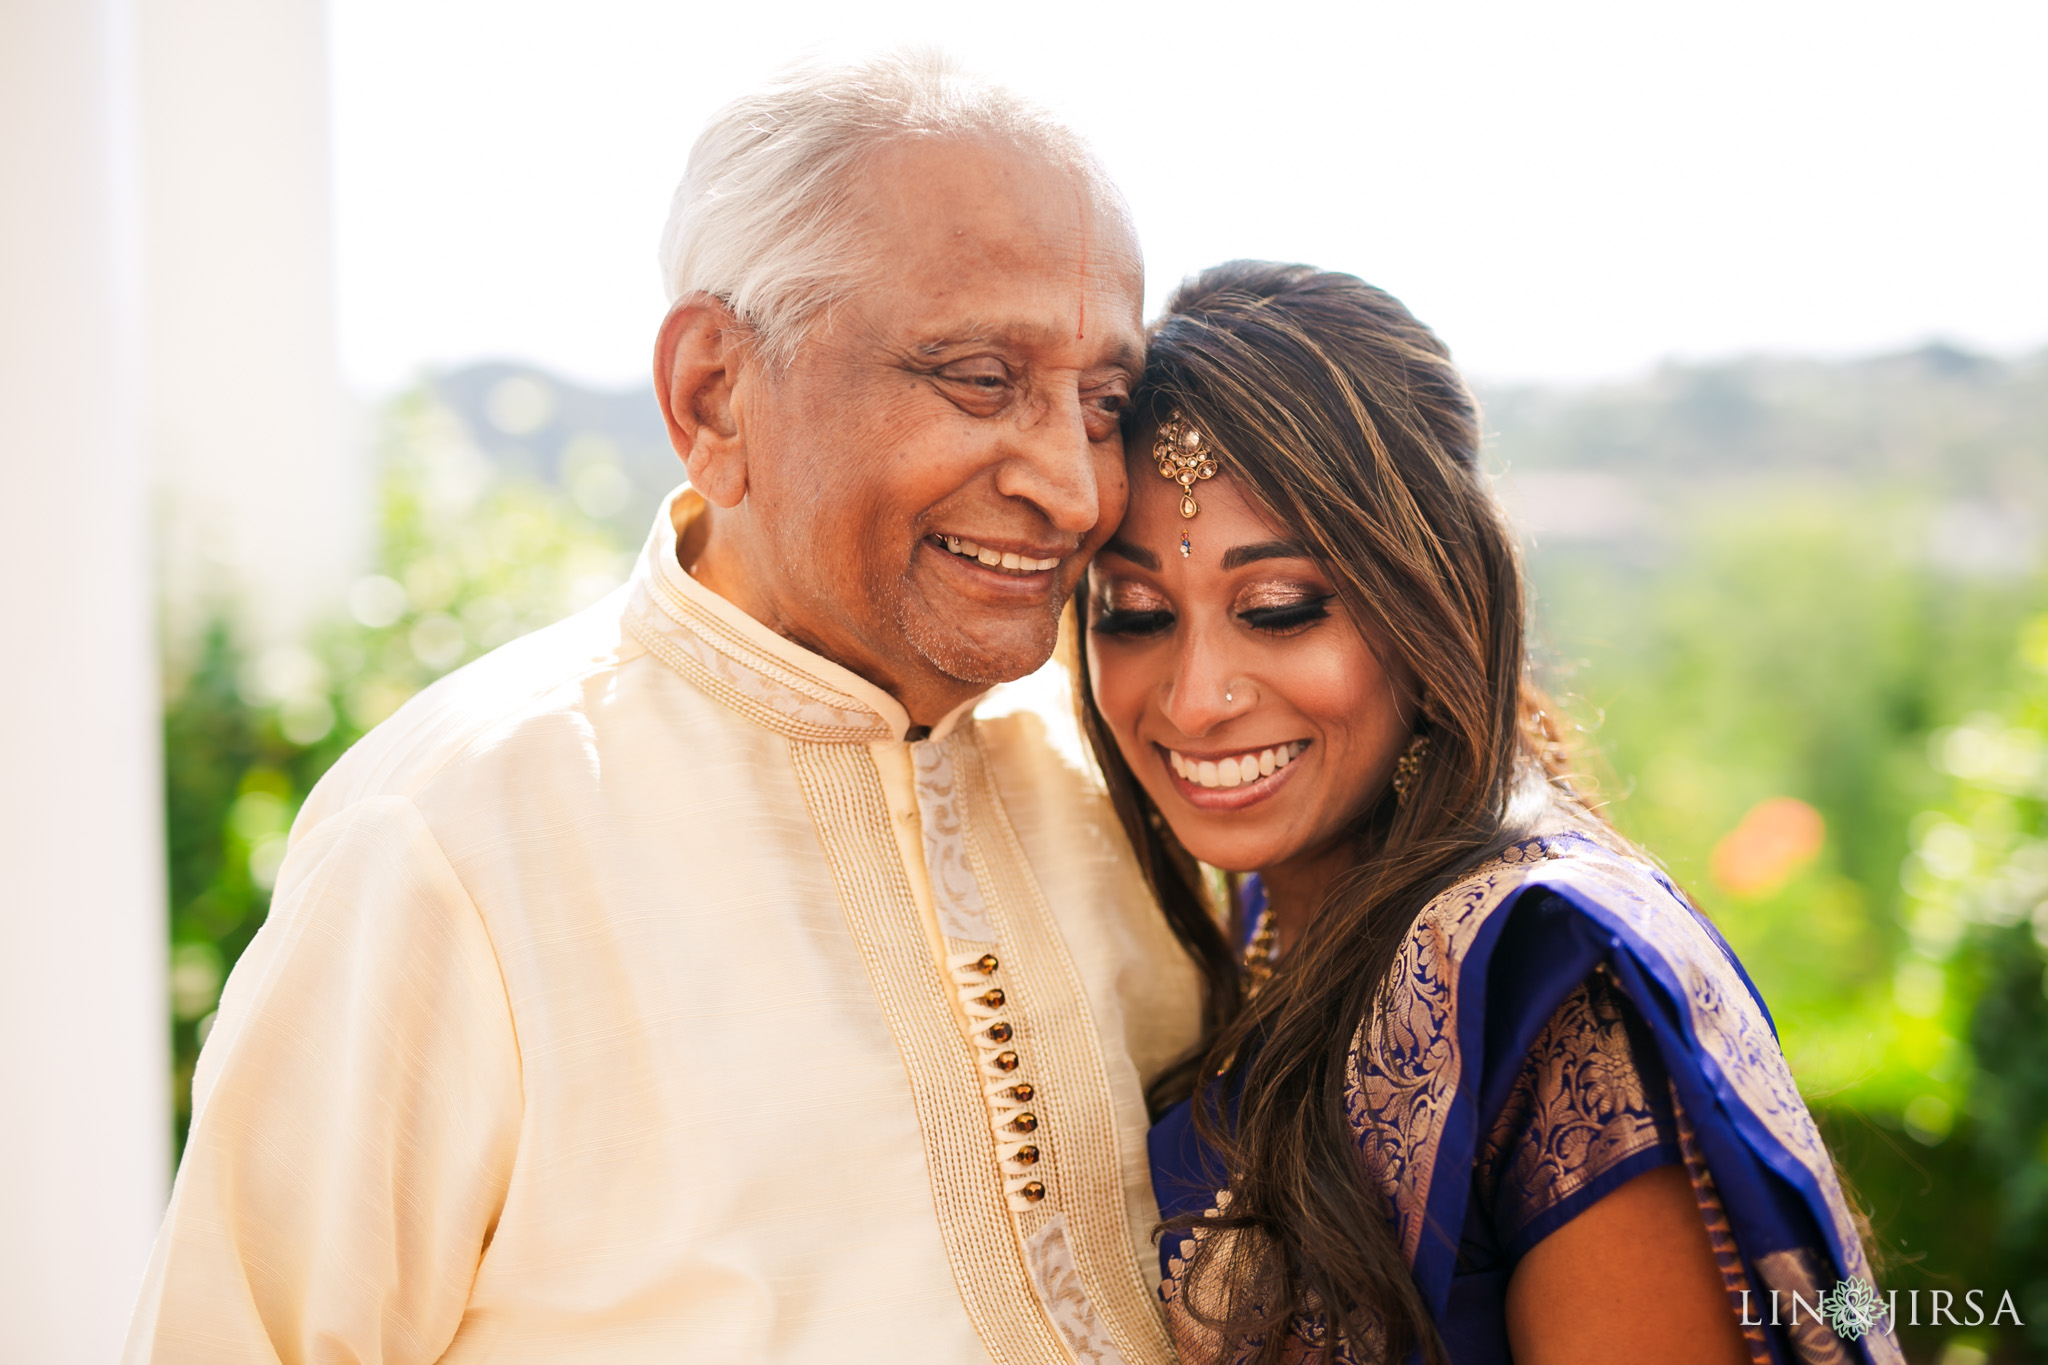 005 sherwood country club indian father bride wedding photography